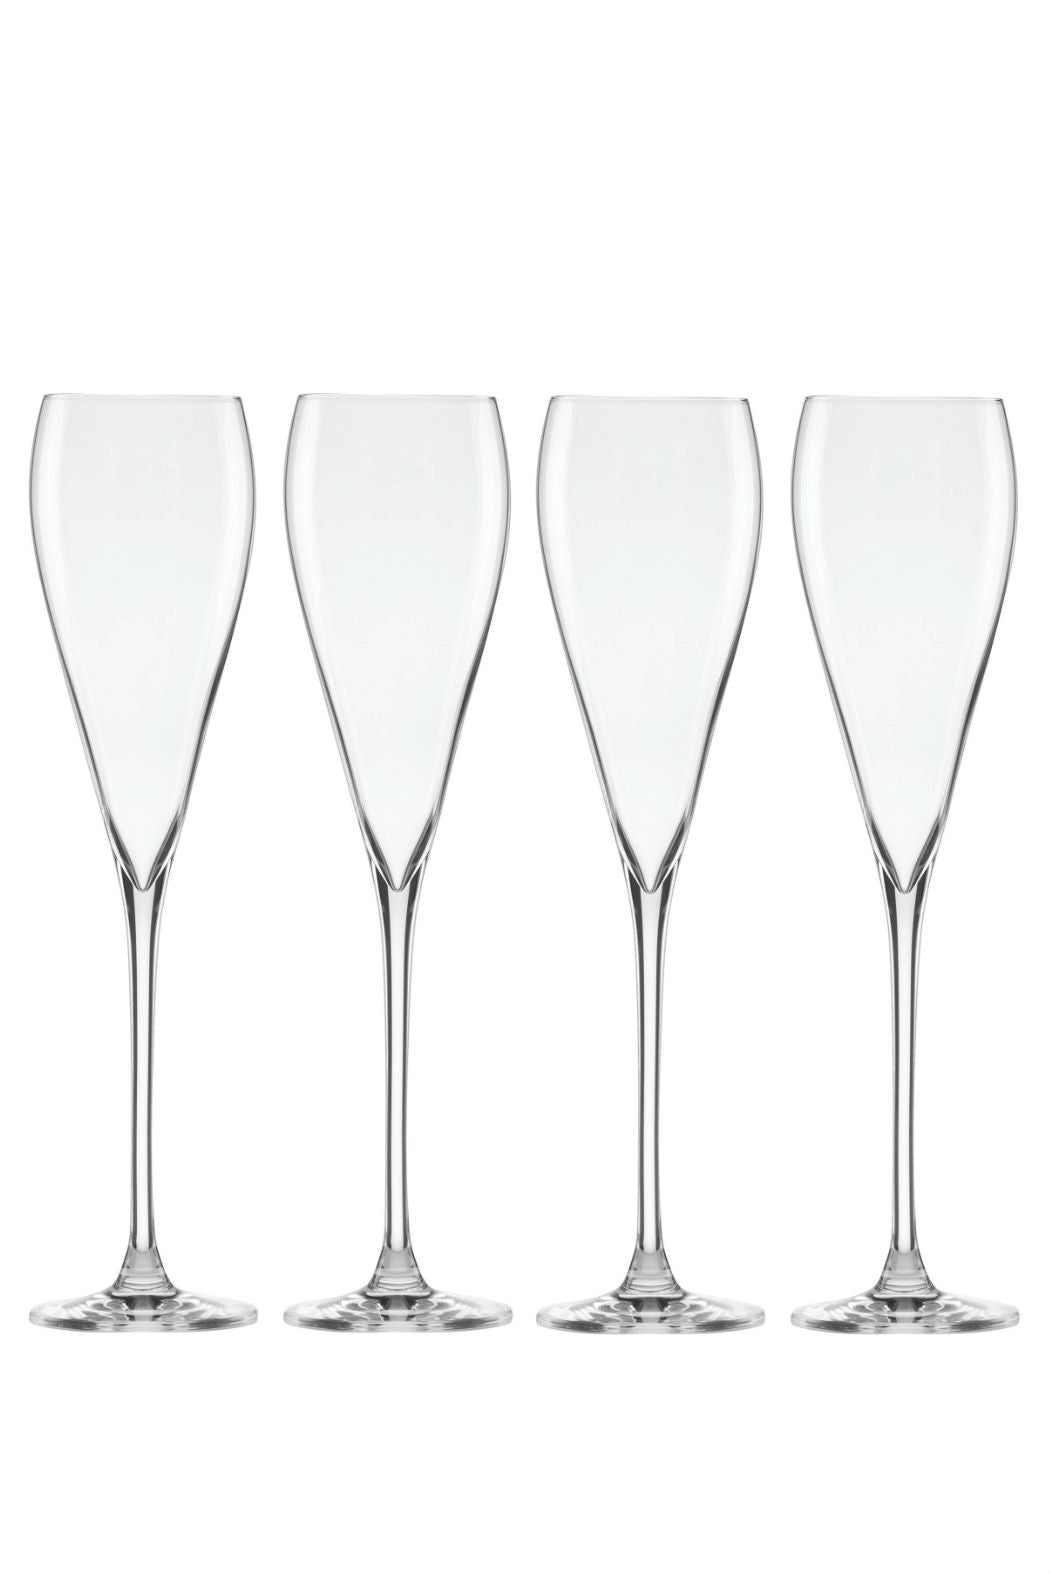 Tuscany Set of 4 Champagne Flutes